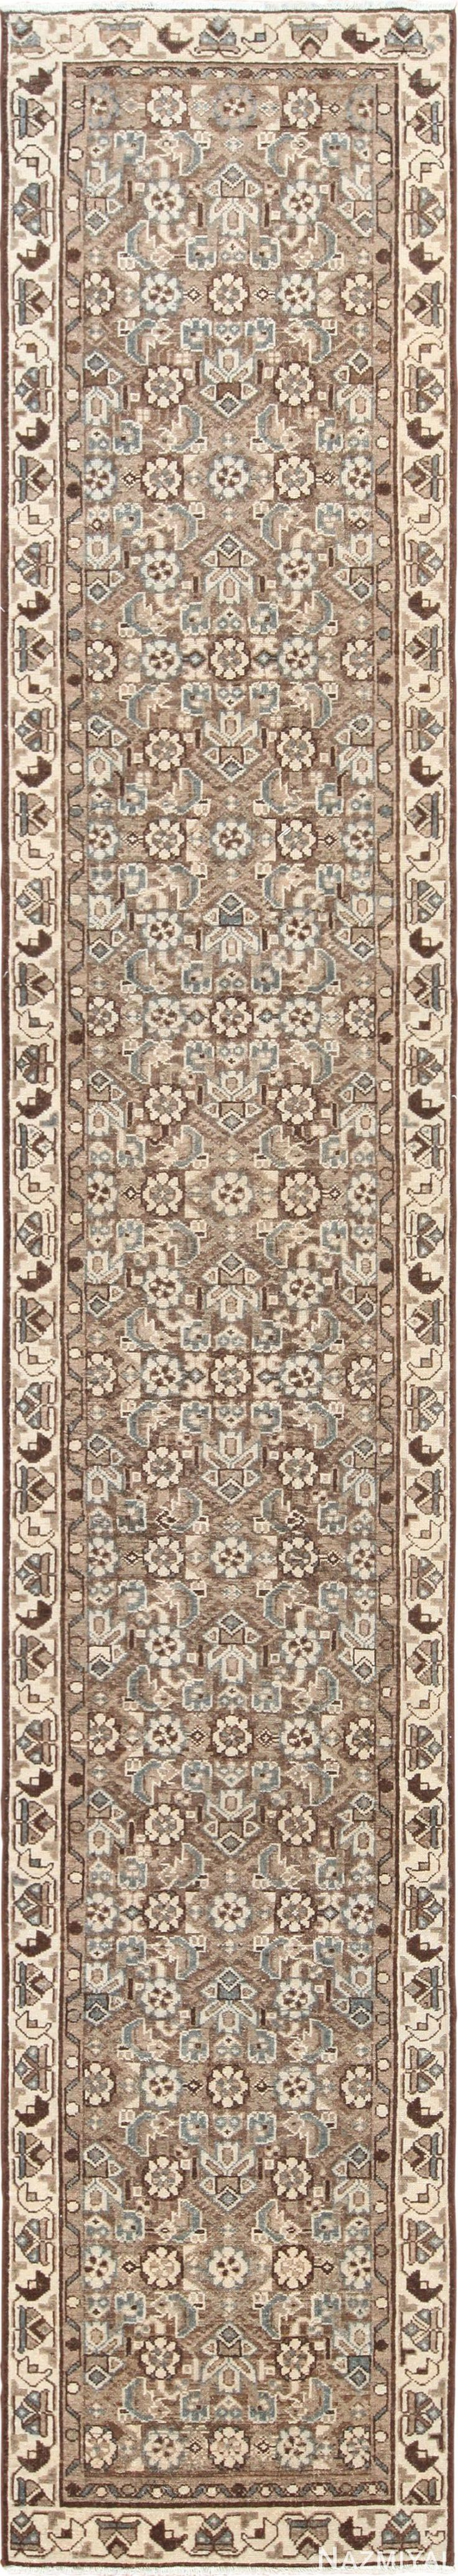 View this beautiful and higly decorative earth tone colored herati fish design antique Persian Malayer #runner #rug #49630 available for sale at Nazmiyal Antique #Rugs located in the heart of #NewYorkCity.